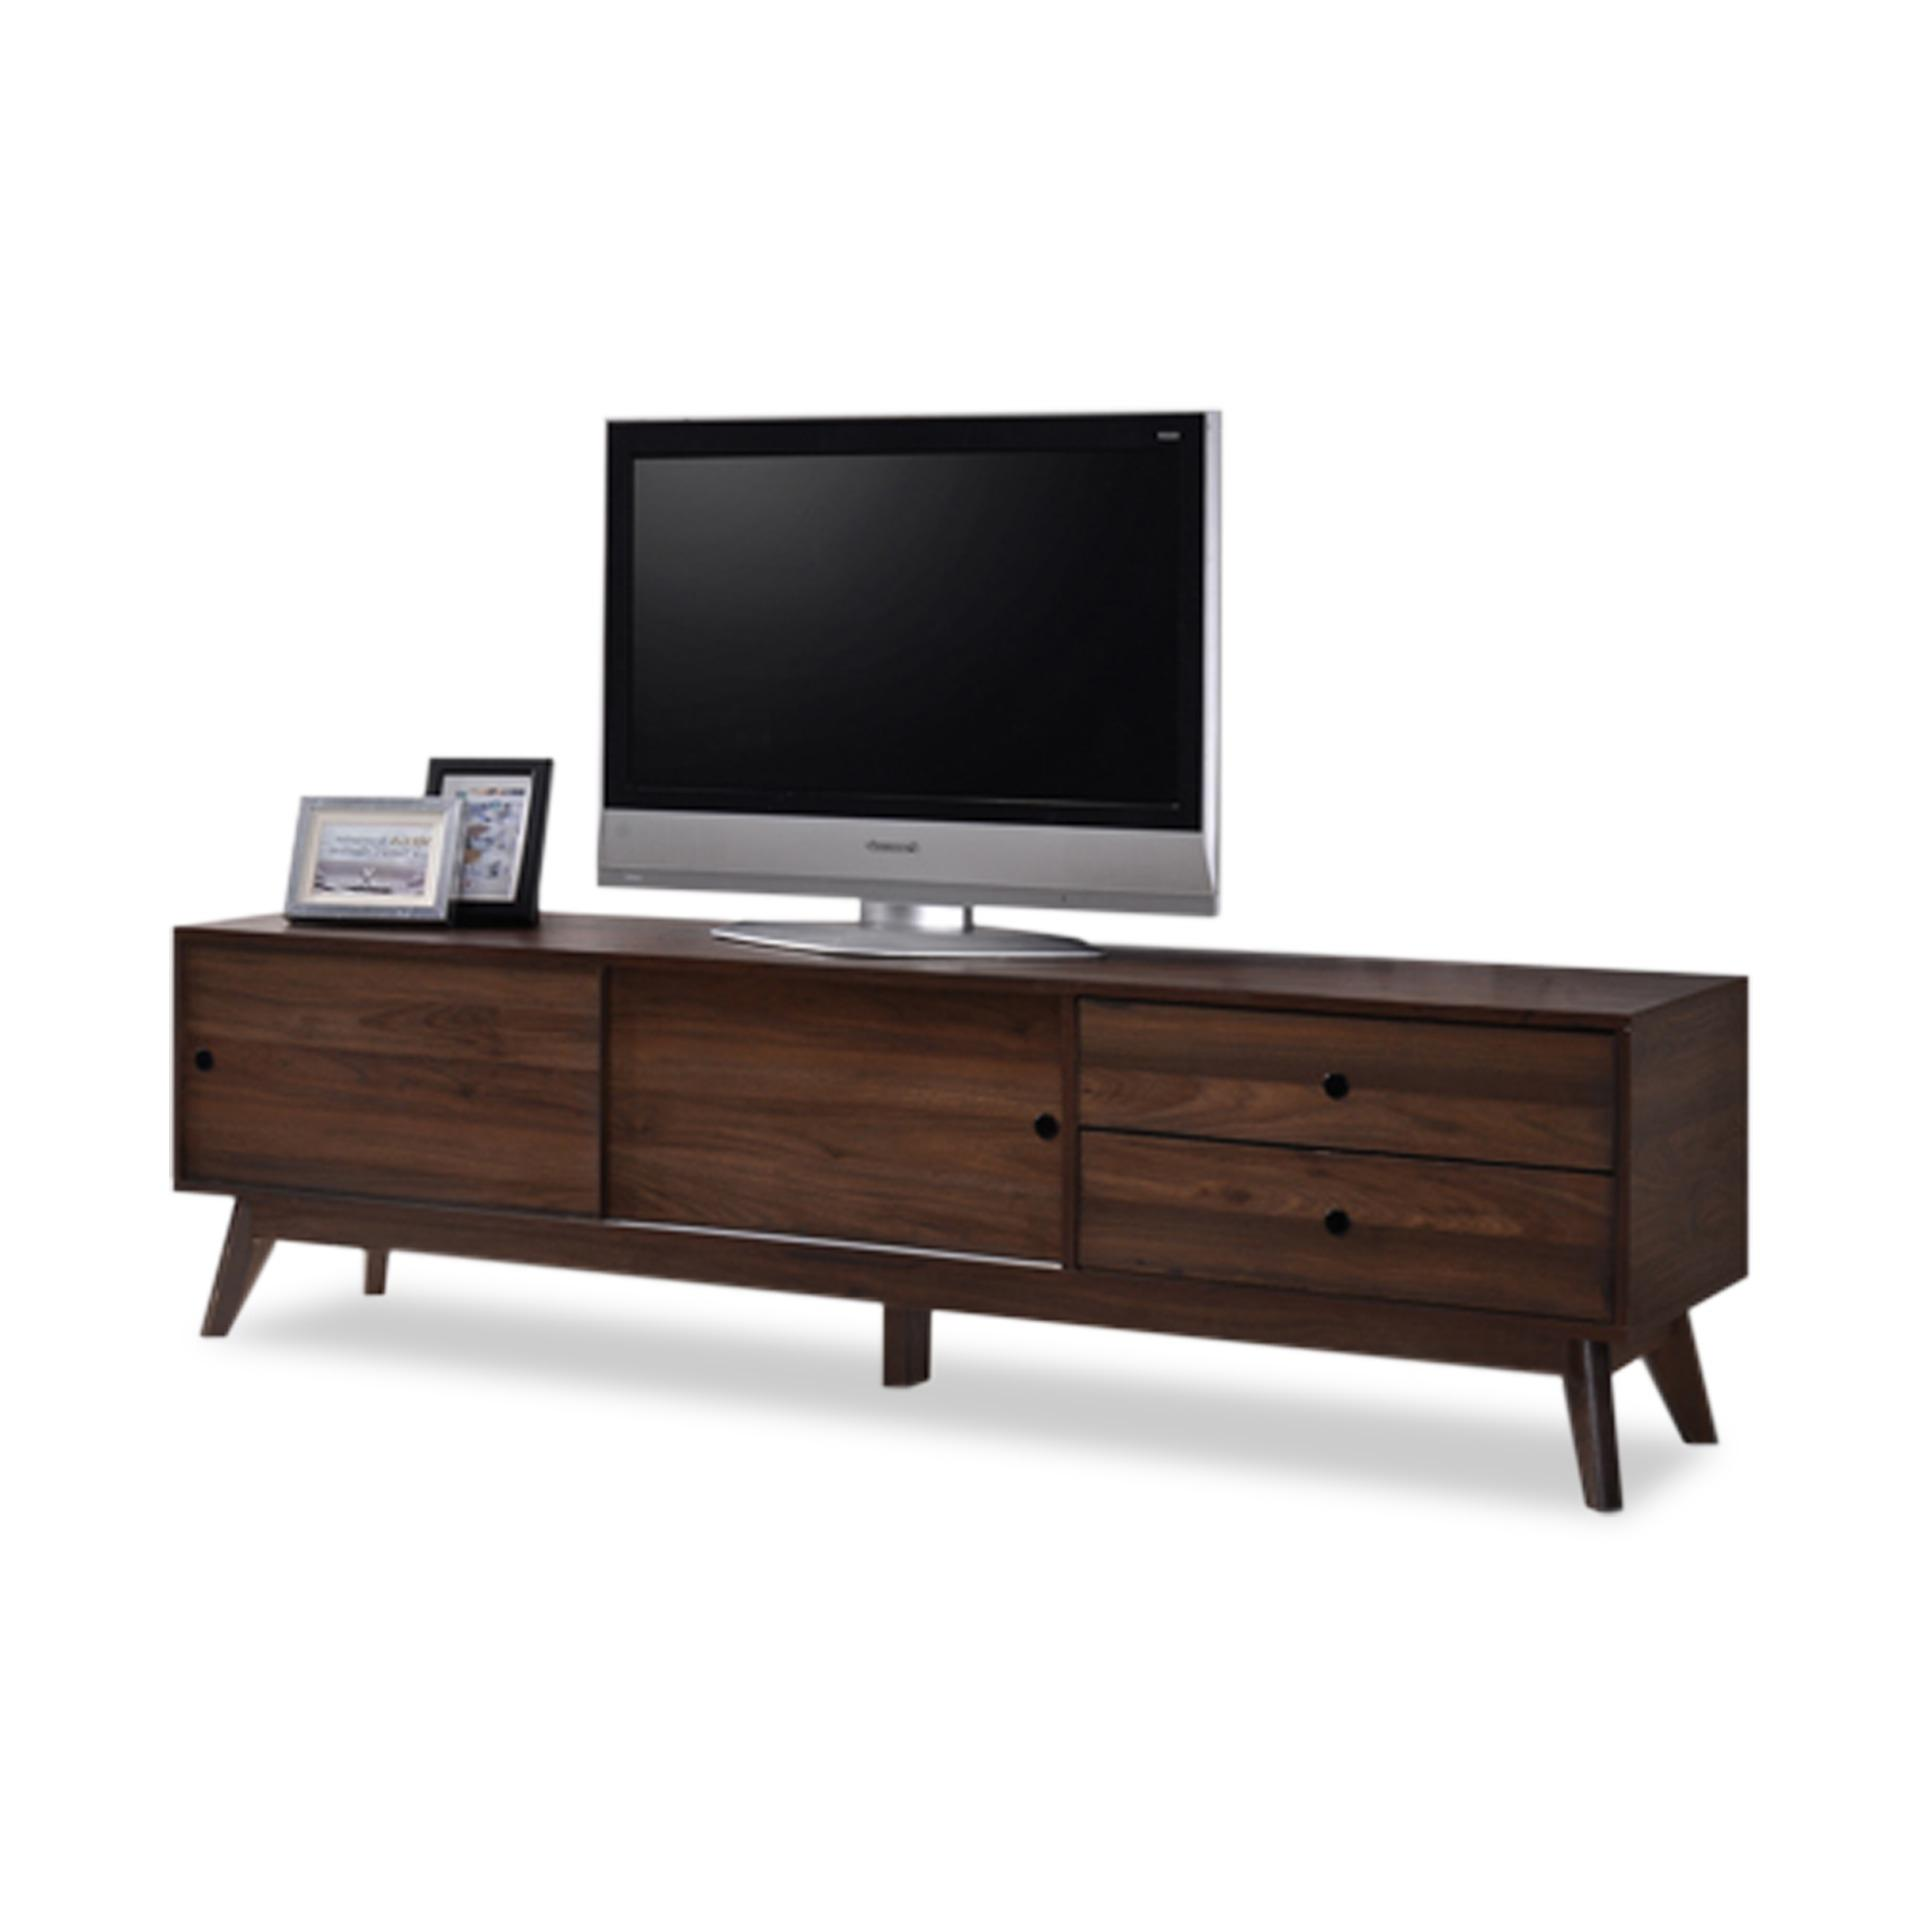 Justin TV Cabinet 1.8m (FREE DELIVERY)(FREE ASSEMBLY)